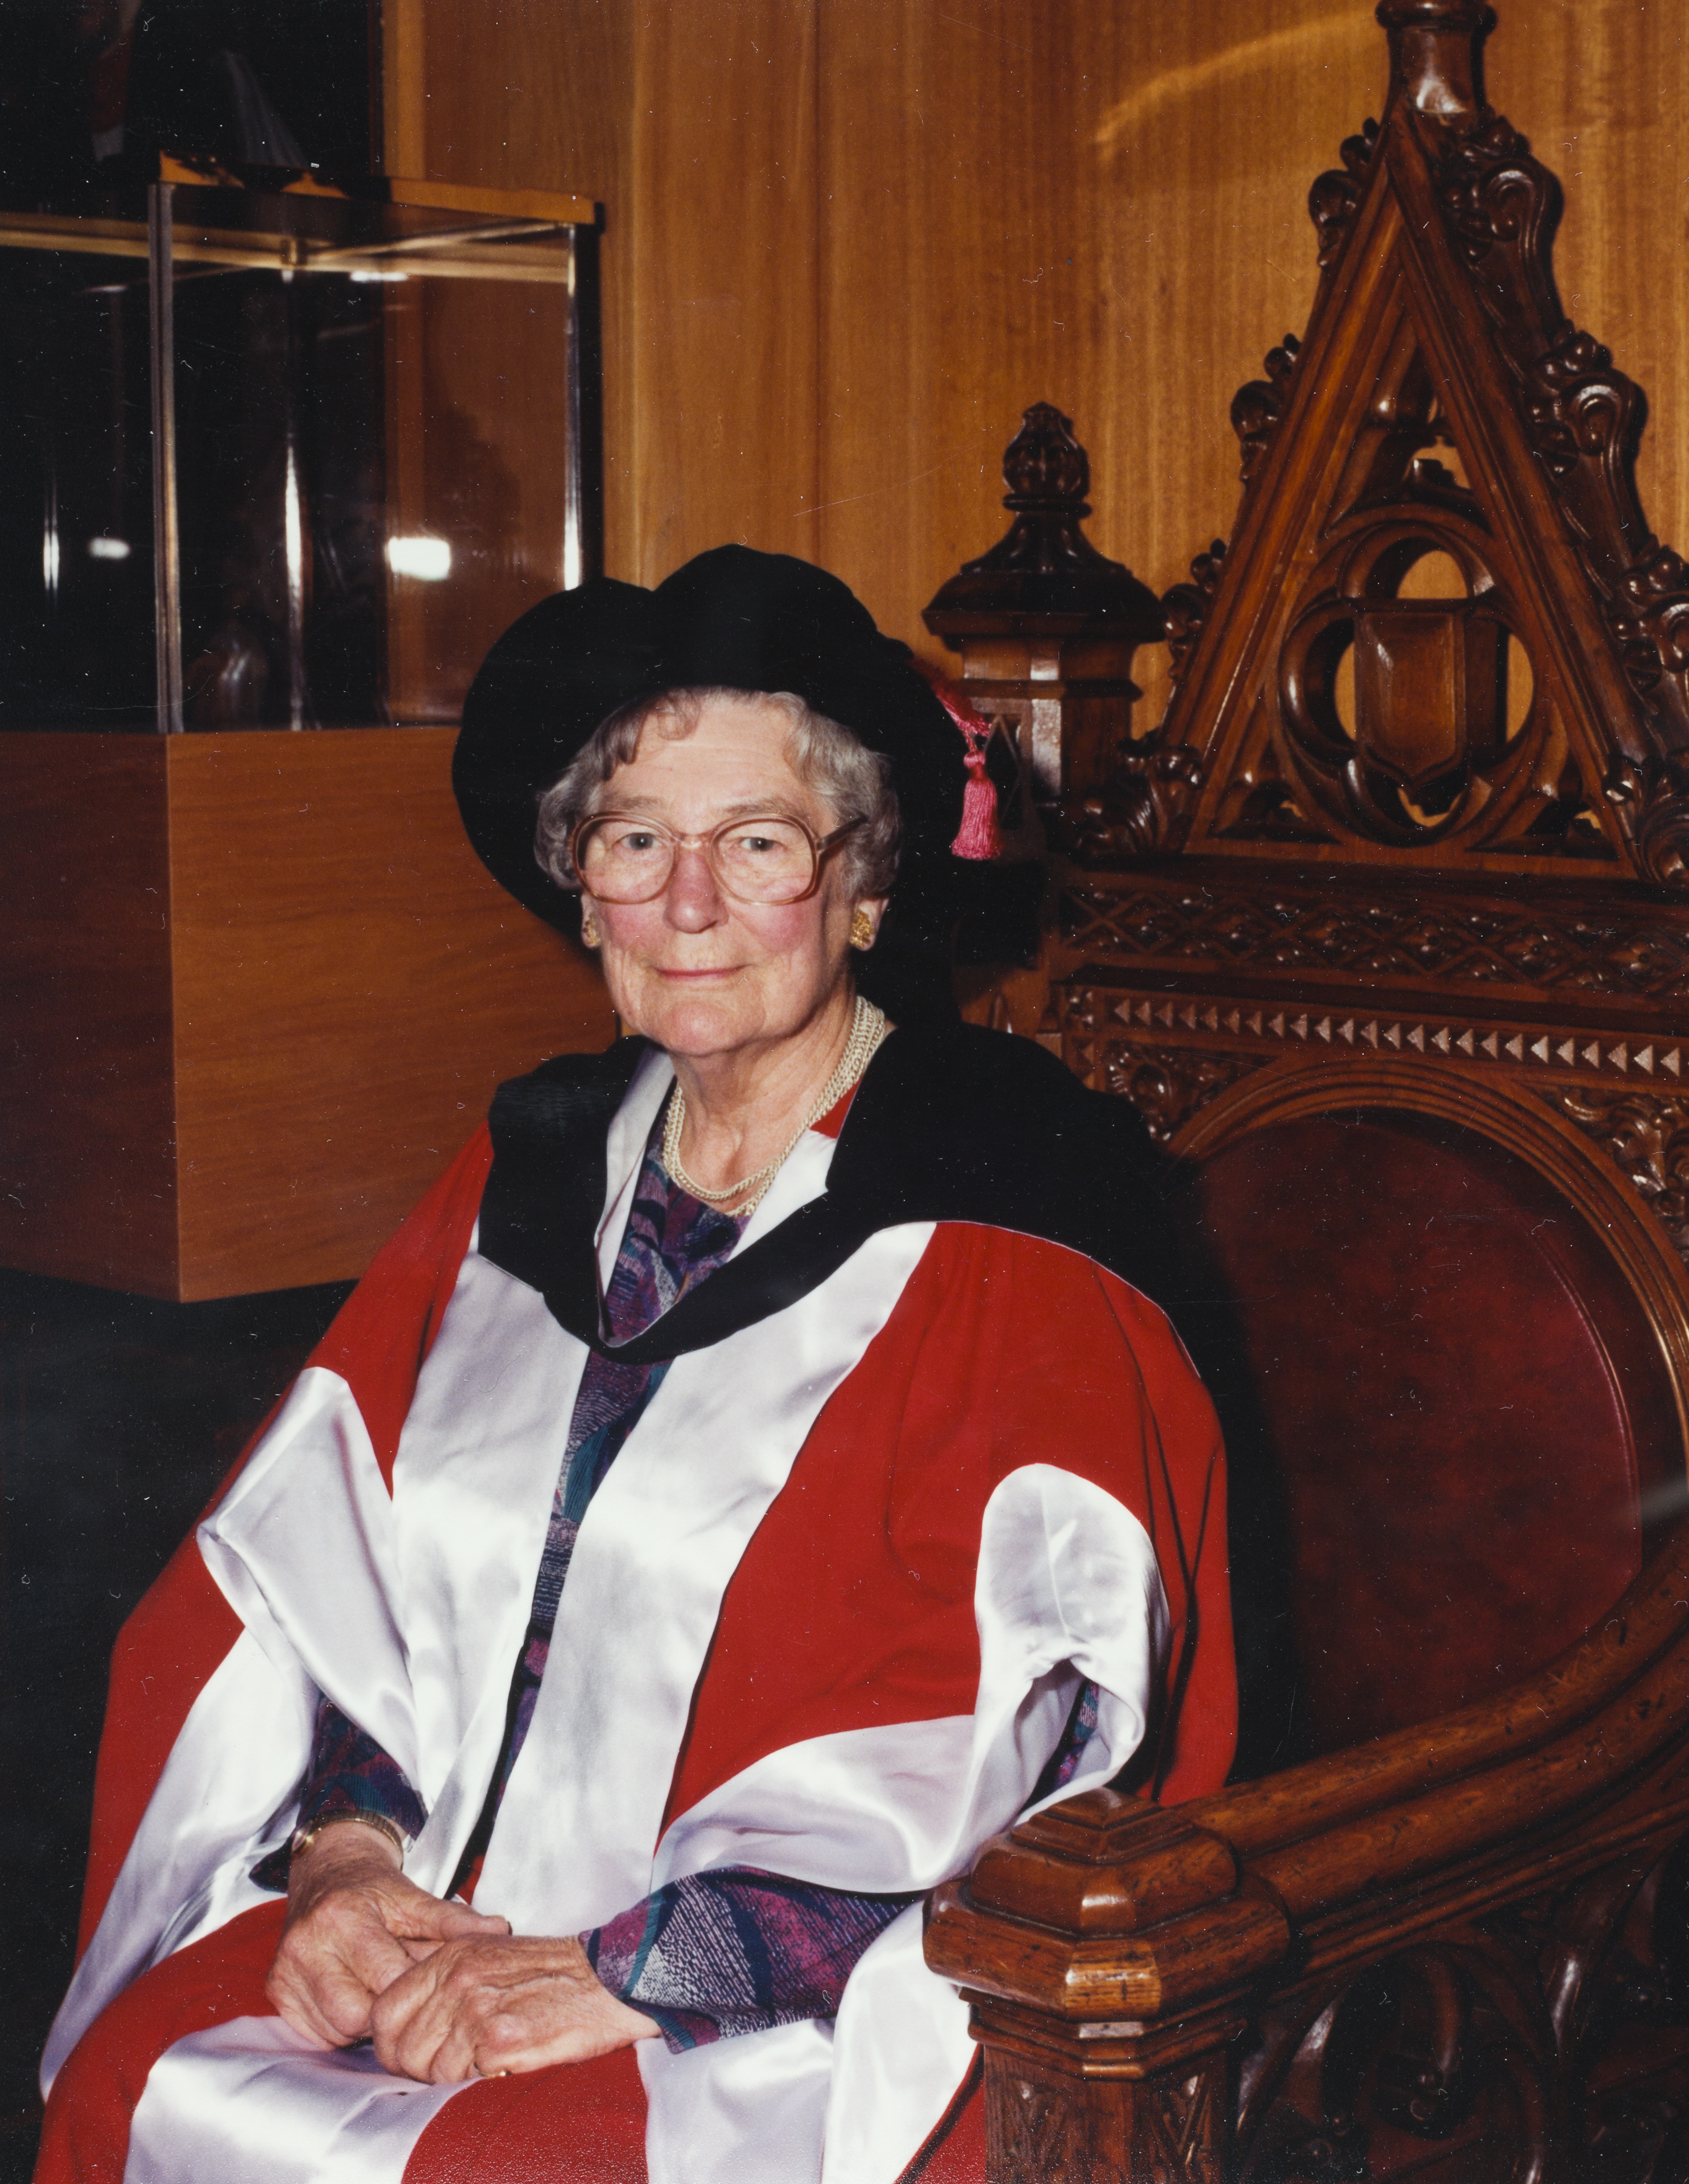 Upon the conferral of her degree of Doctor of Laws honoris causa. Norman, Wodetzki,